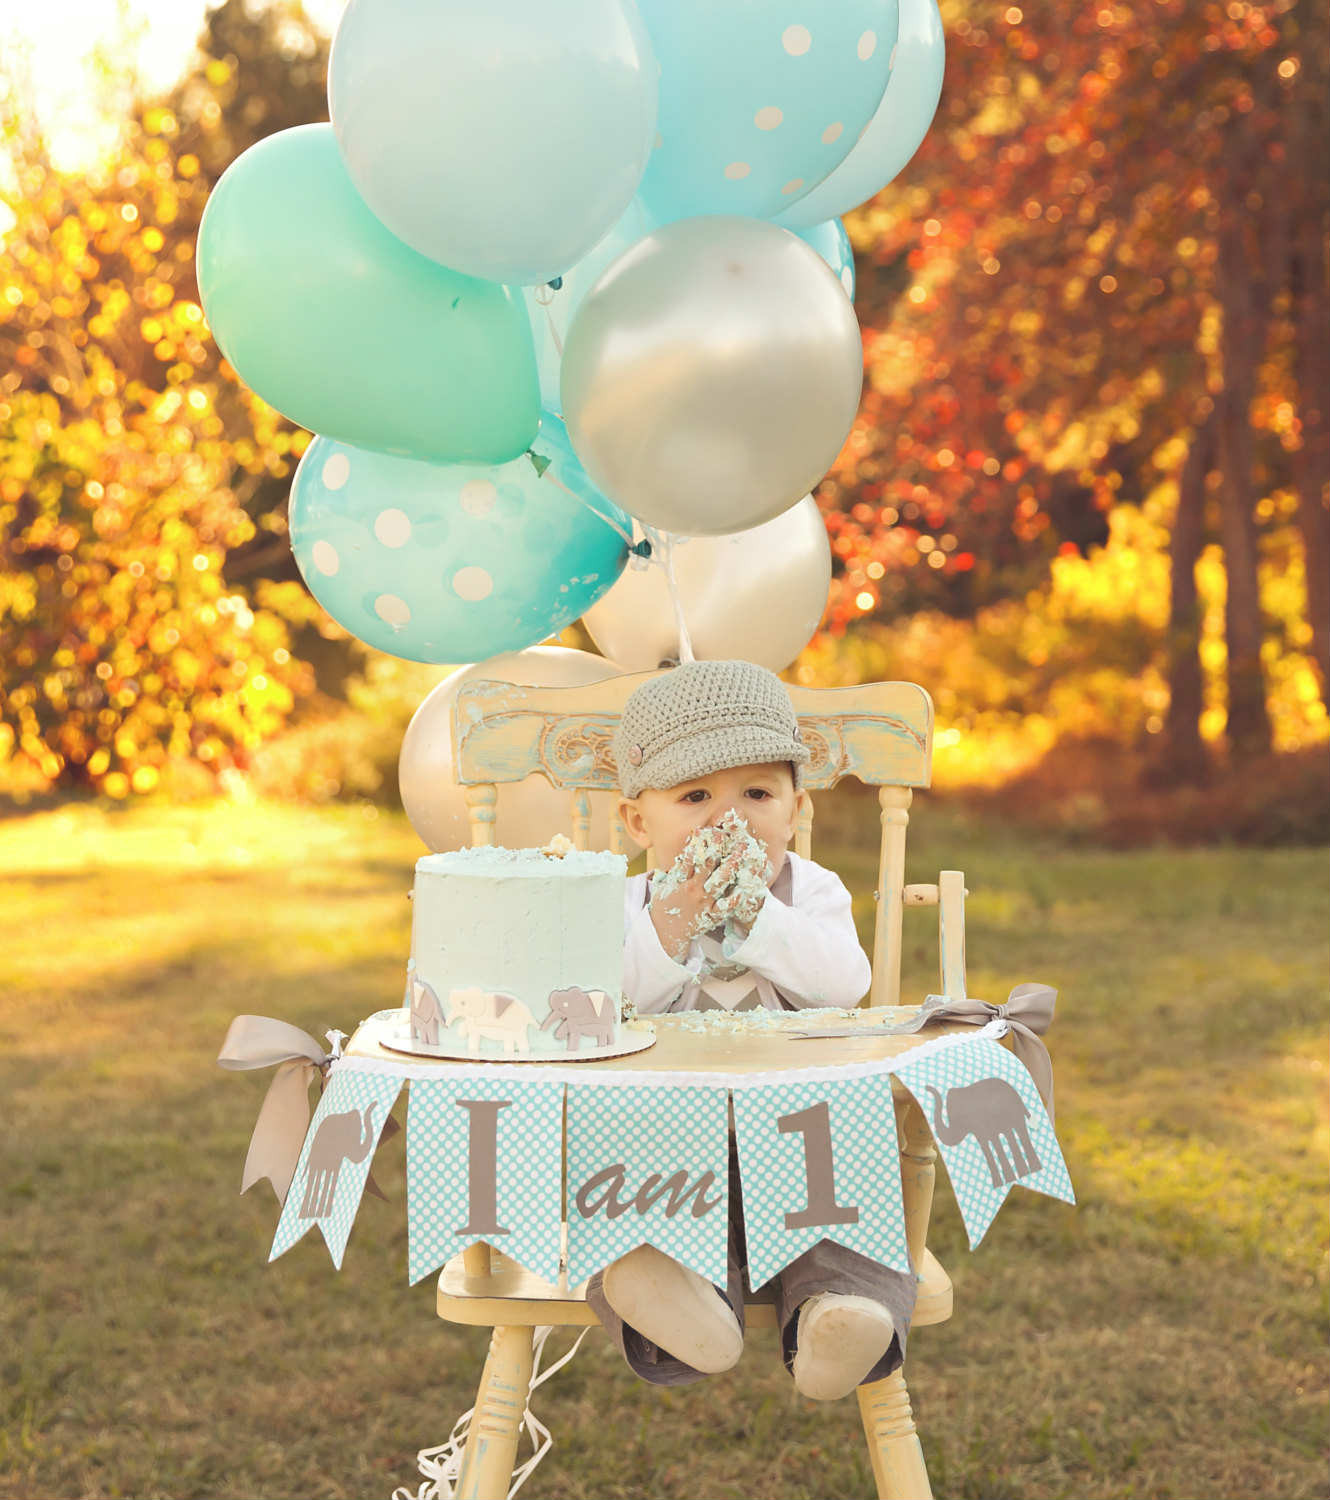 Best ideas about 1 Year Old Birthday Party Locations . Save or Pin First Birthday The time to celebrate is here Now.